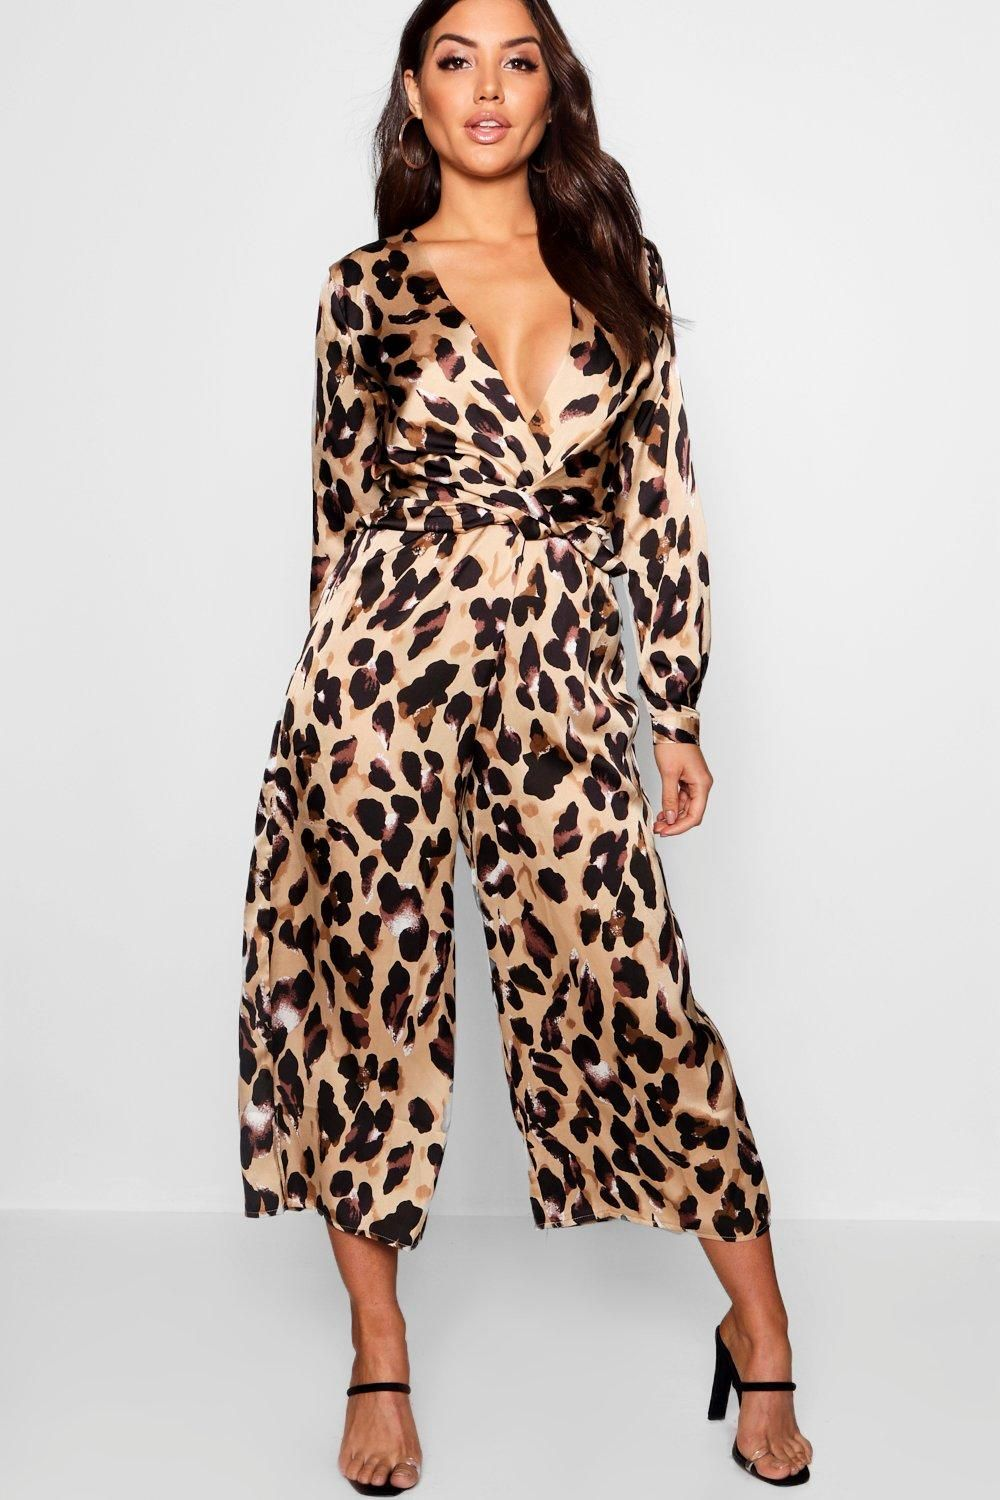 d4935f53420 Click here to find out about the Plunge Twist Leopard Print Satin Jumpsuit  from Boohoo, part of our latest Jumpsuits collection ready to shop online  today!